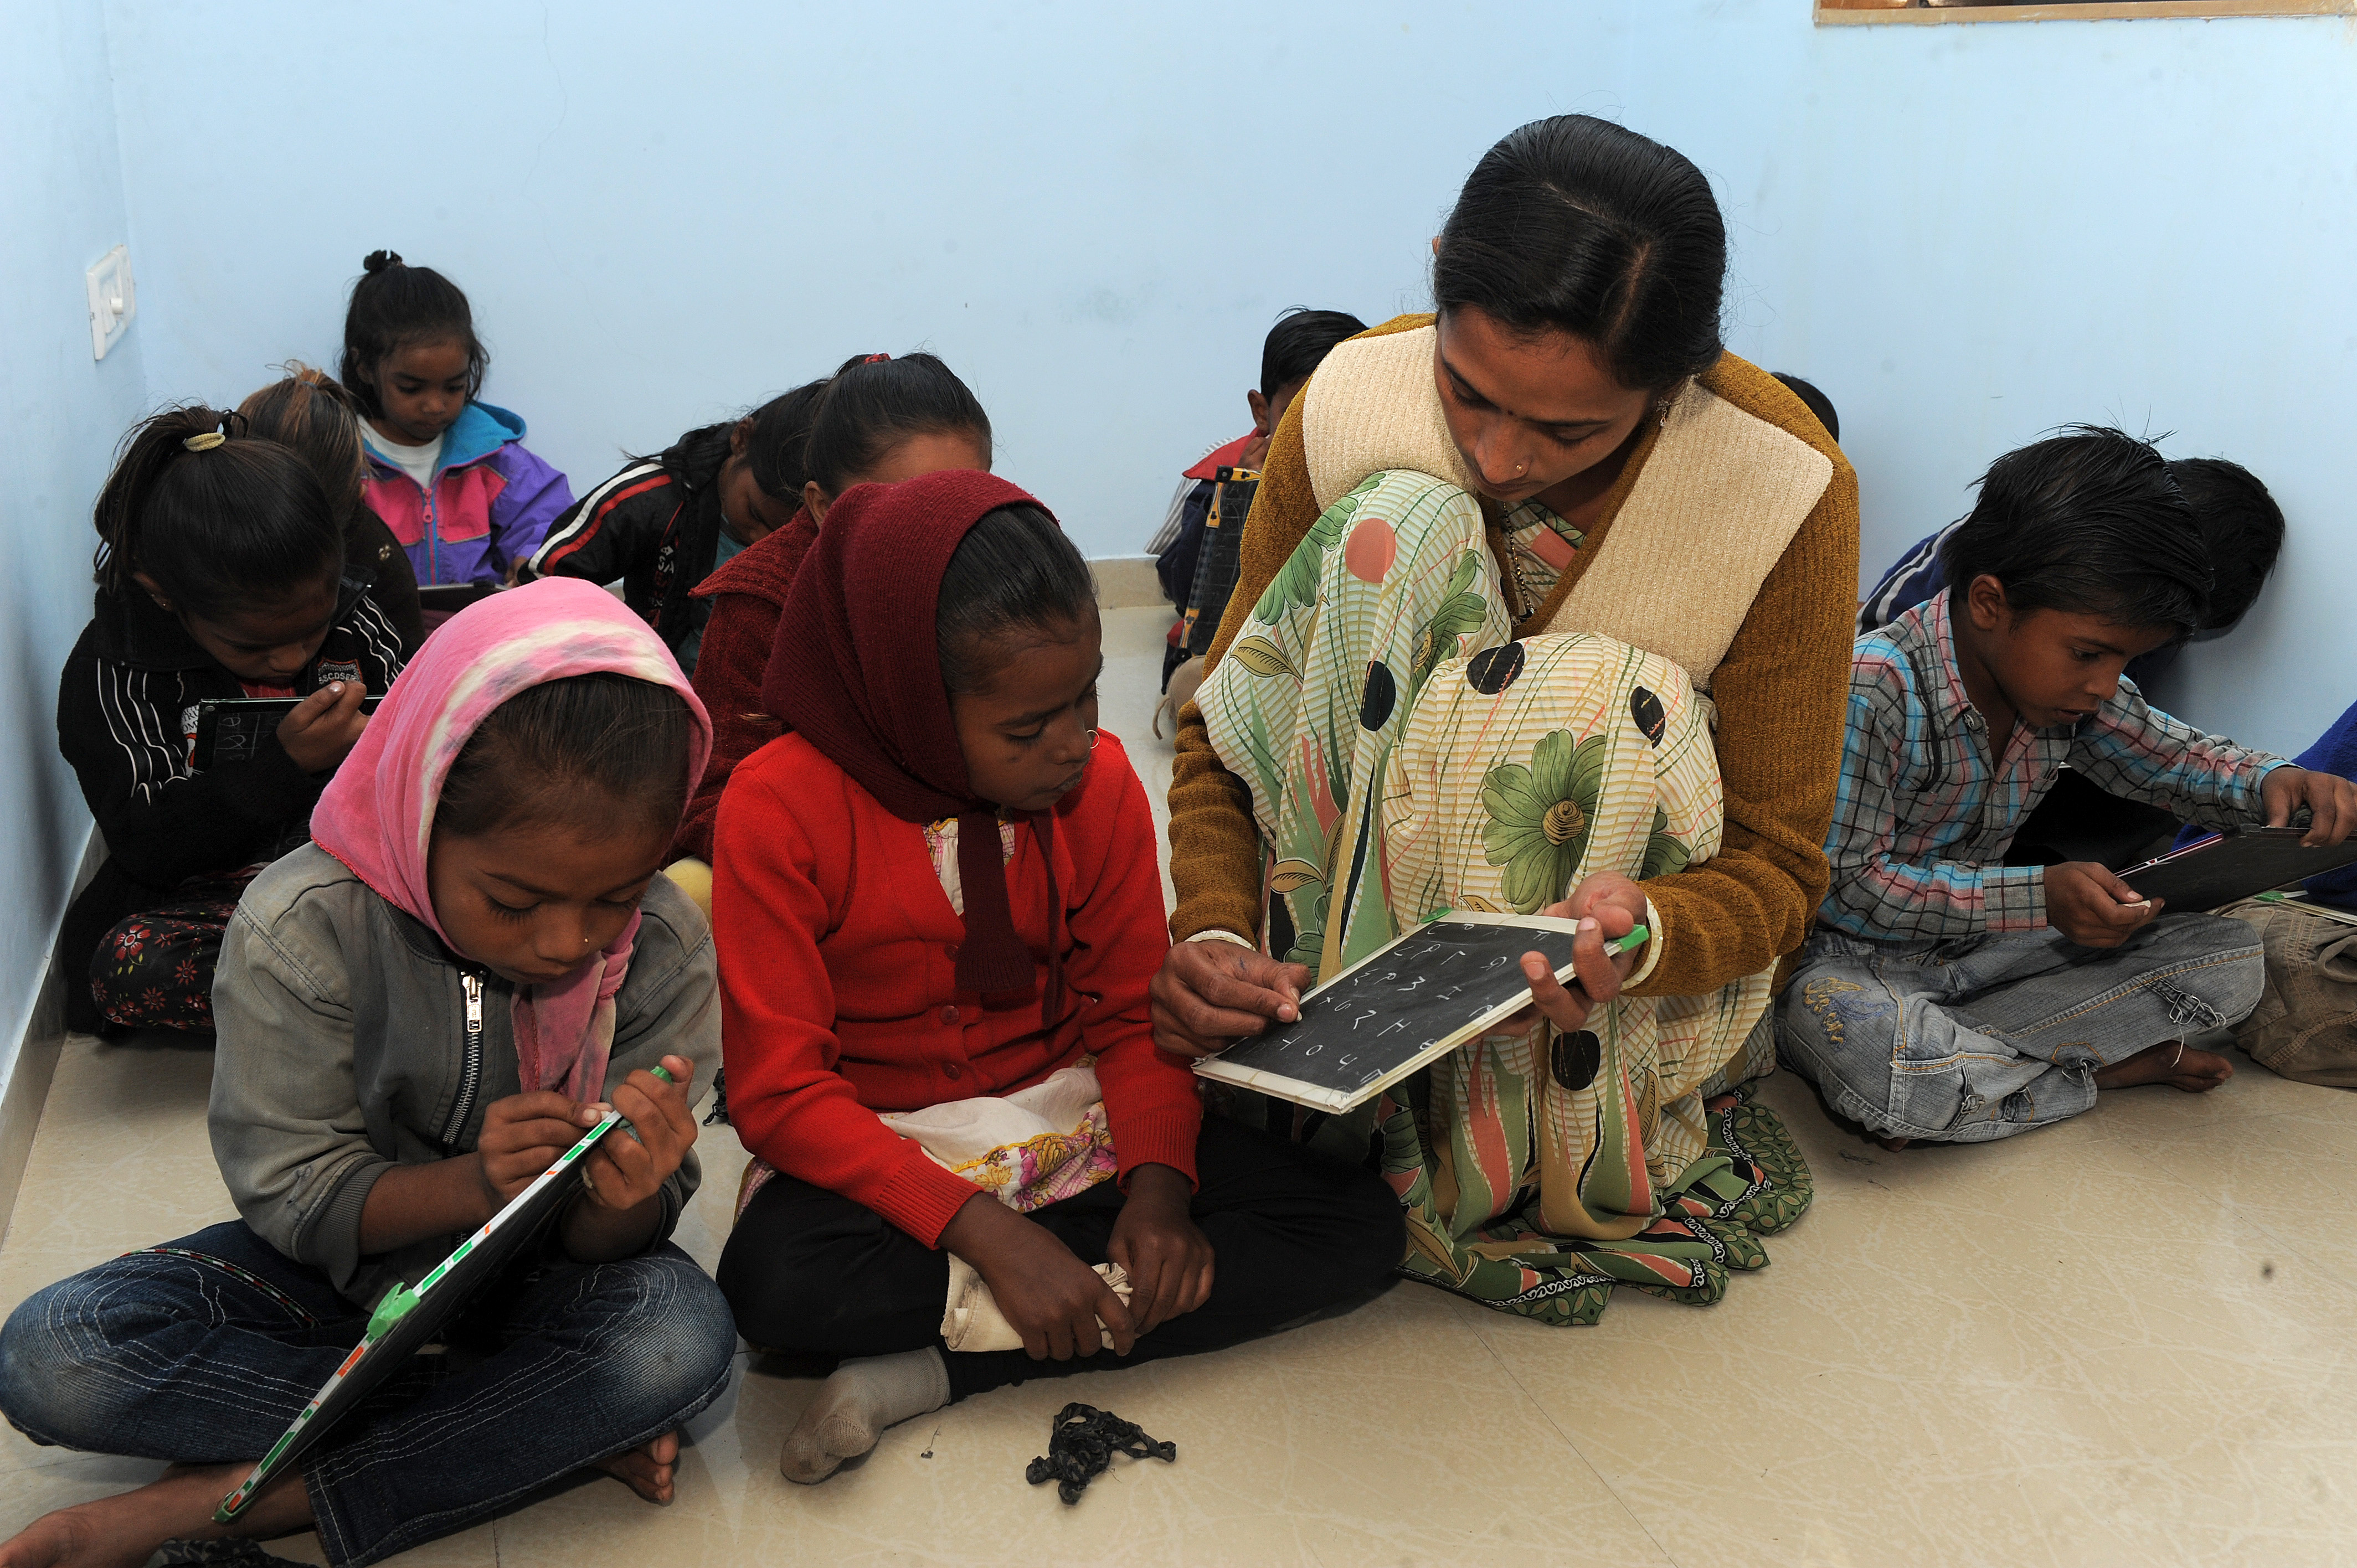 An Indian teacher assists underprivileged children during their lessons at Palodia village of Gandhinagar district, some 25 kms from Ahmedabad on November 21, 2013.